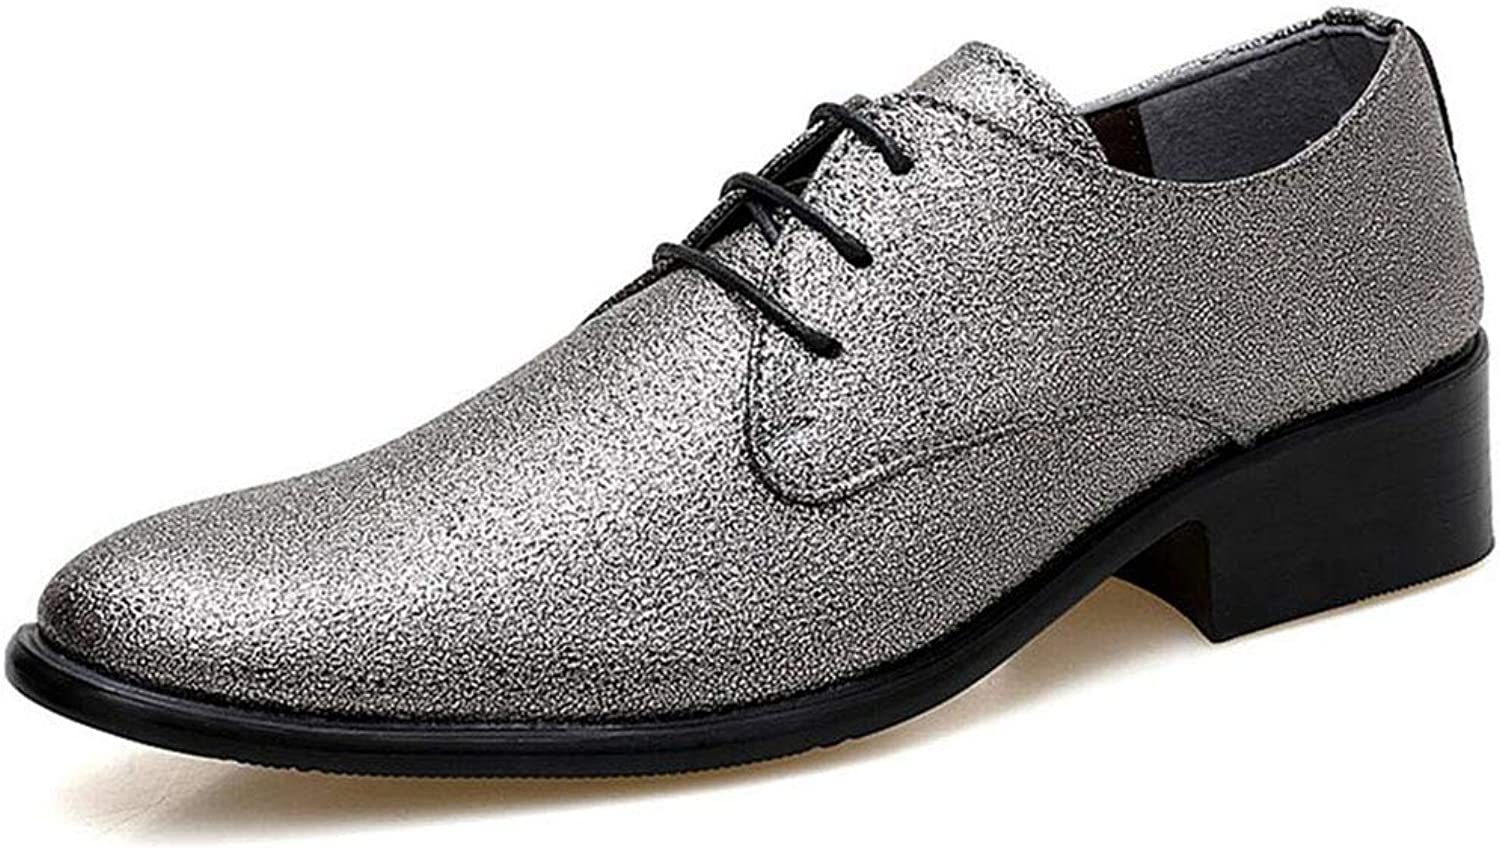 Xxoshoe Men's Leather Dress Oxford shoes Brogue Wing-Tip Lace Up Modern Business shoes